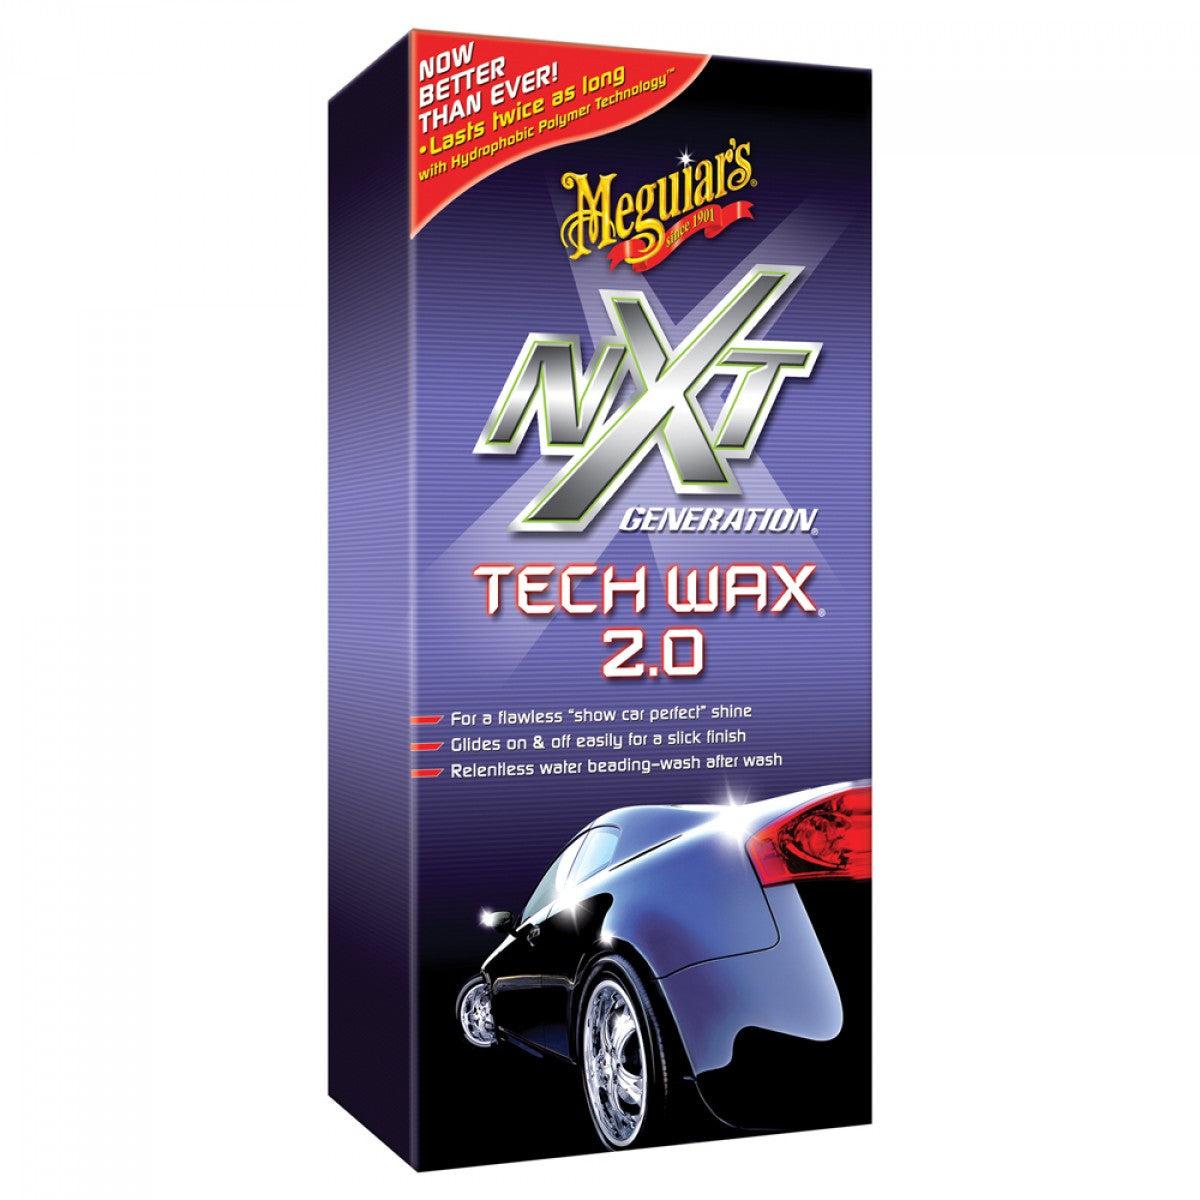 Meguiars NXT Generation Tech Wax 2.0 - Liquid (532ml)